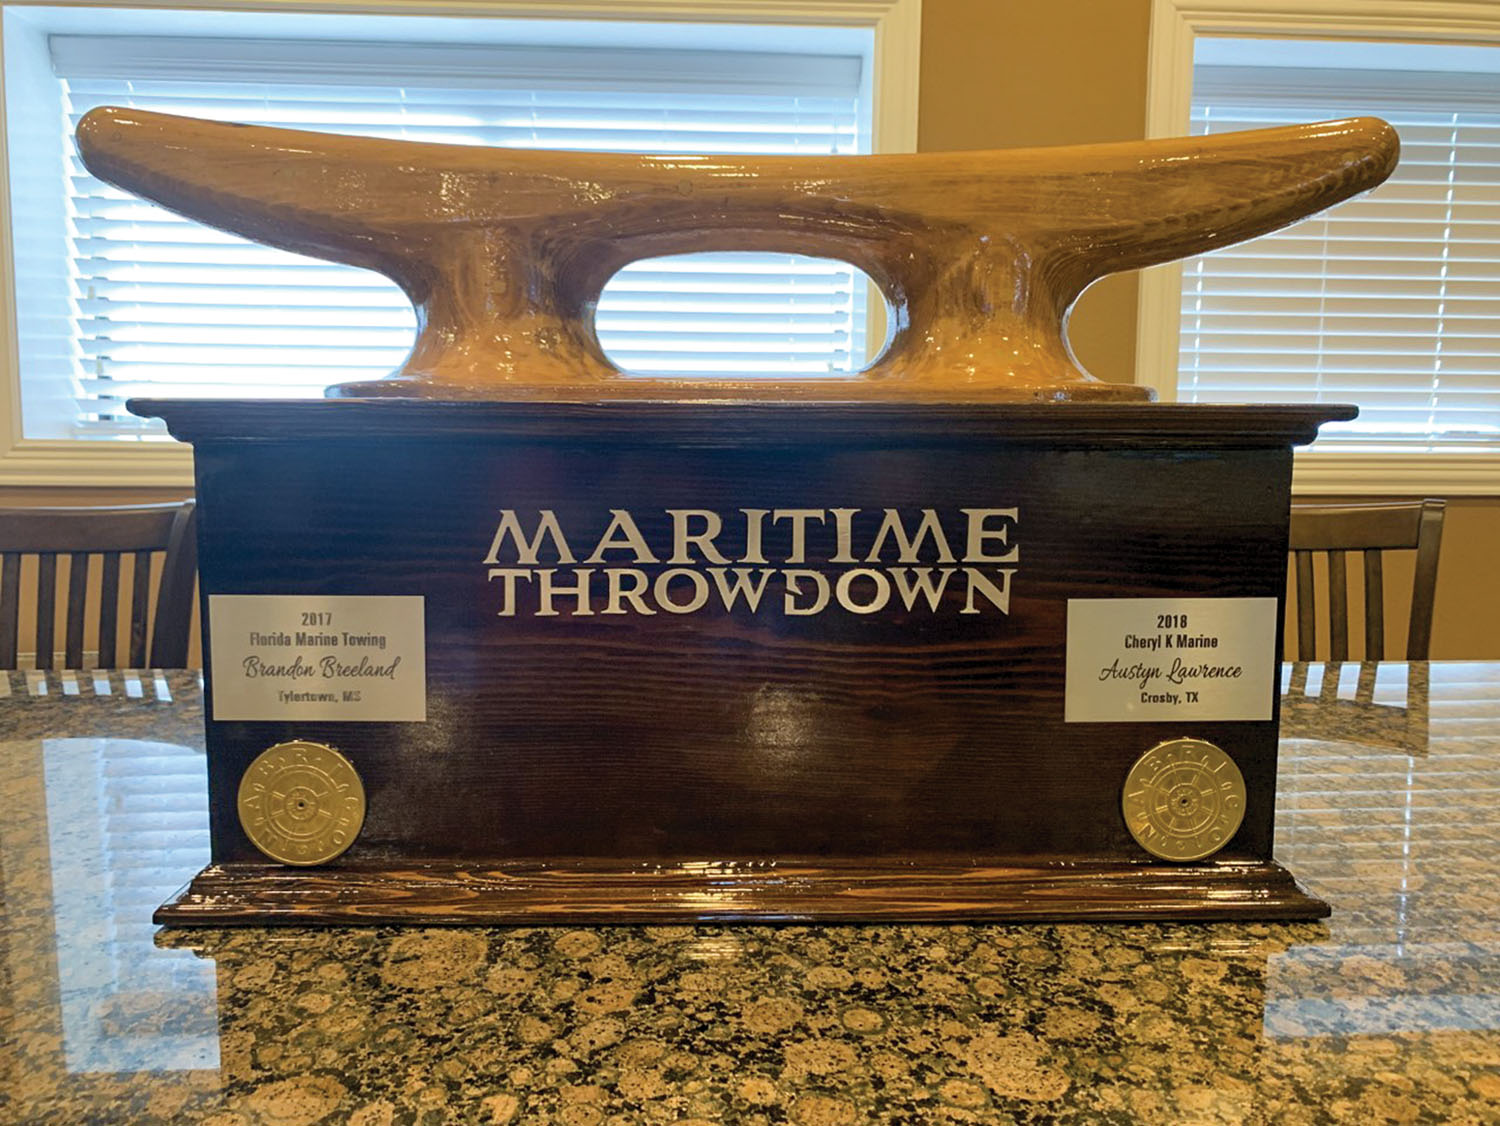 The new Maritime Throwdown trophy was built by Nabrico.